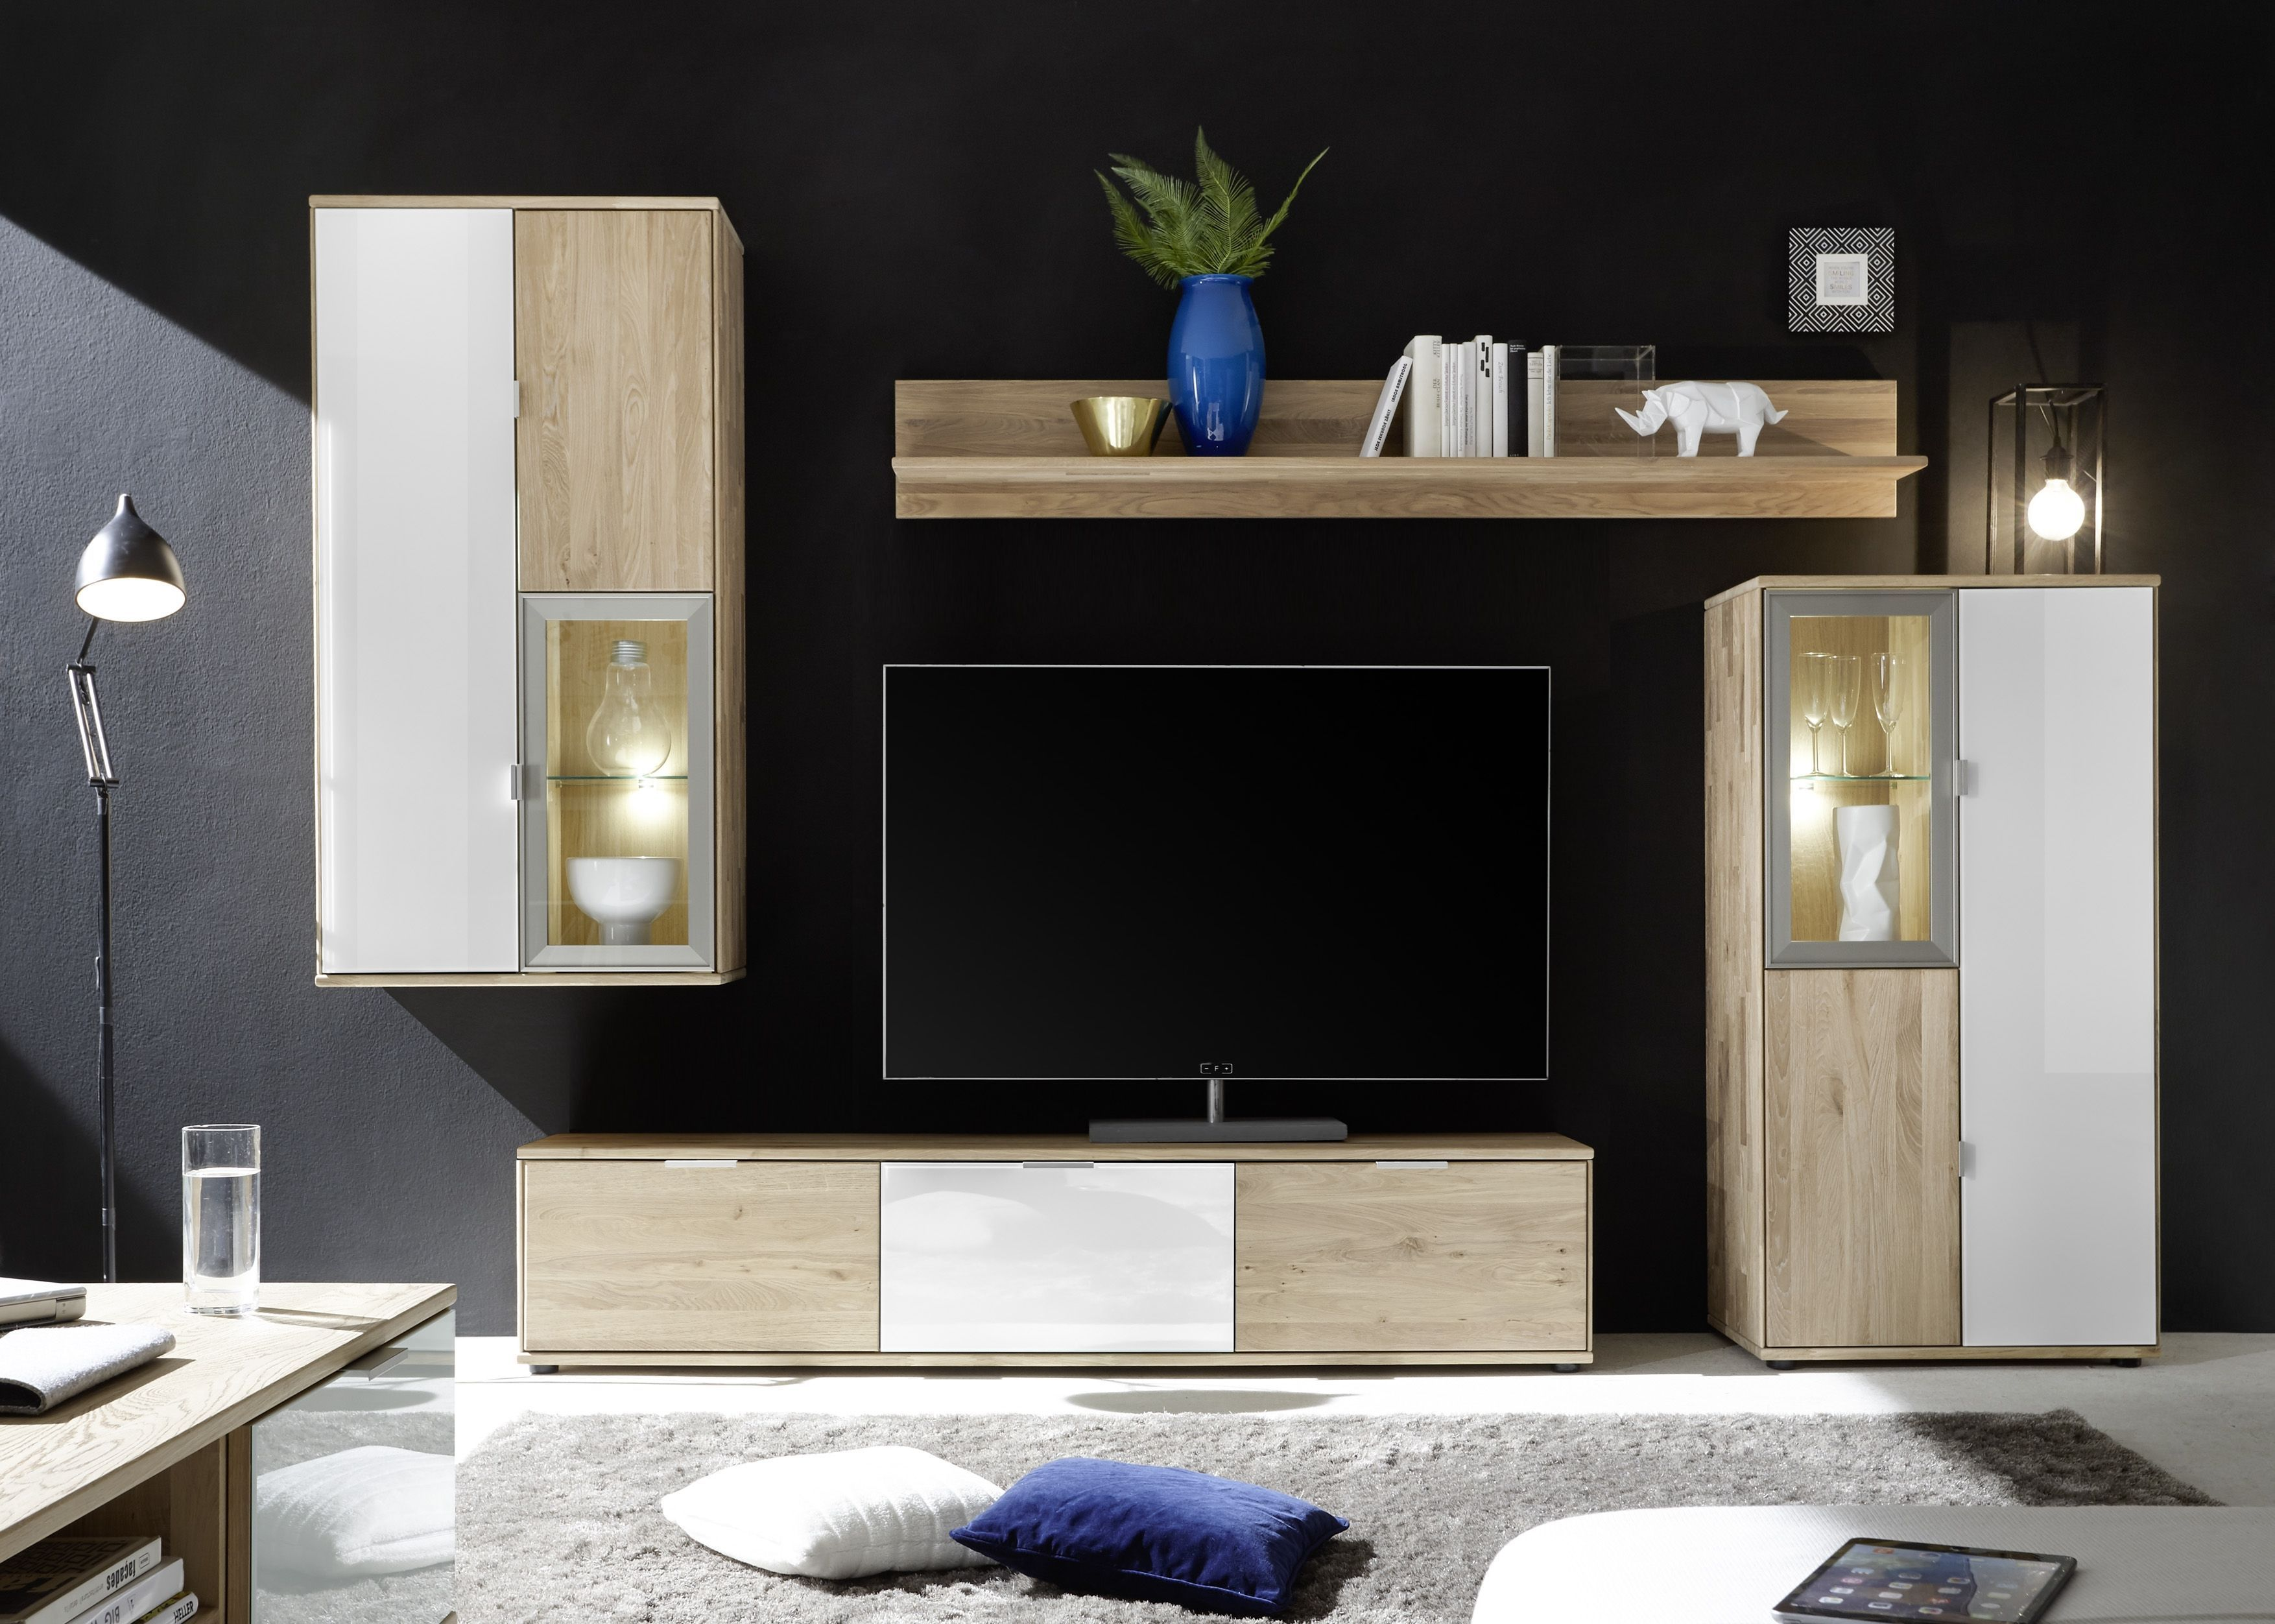 deutschland wohnwand free gorgeous wohnzimmer schranke mabel es ist wie wohndesign magazin. Black Bedroom Furniture Sets. Home Design Ideas